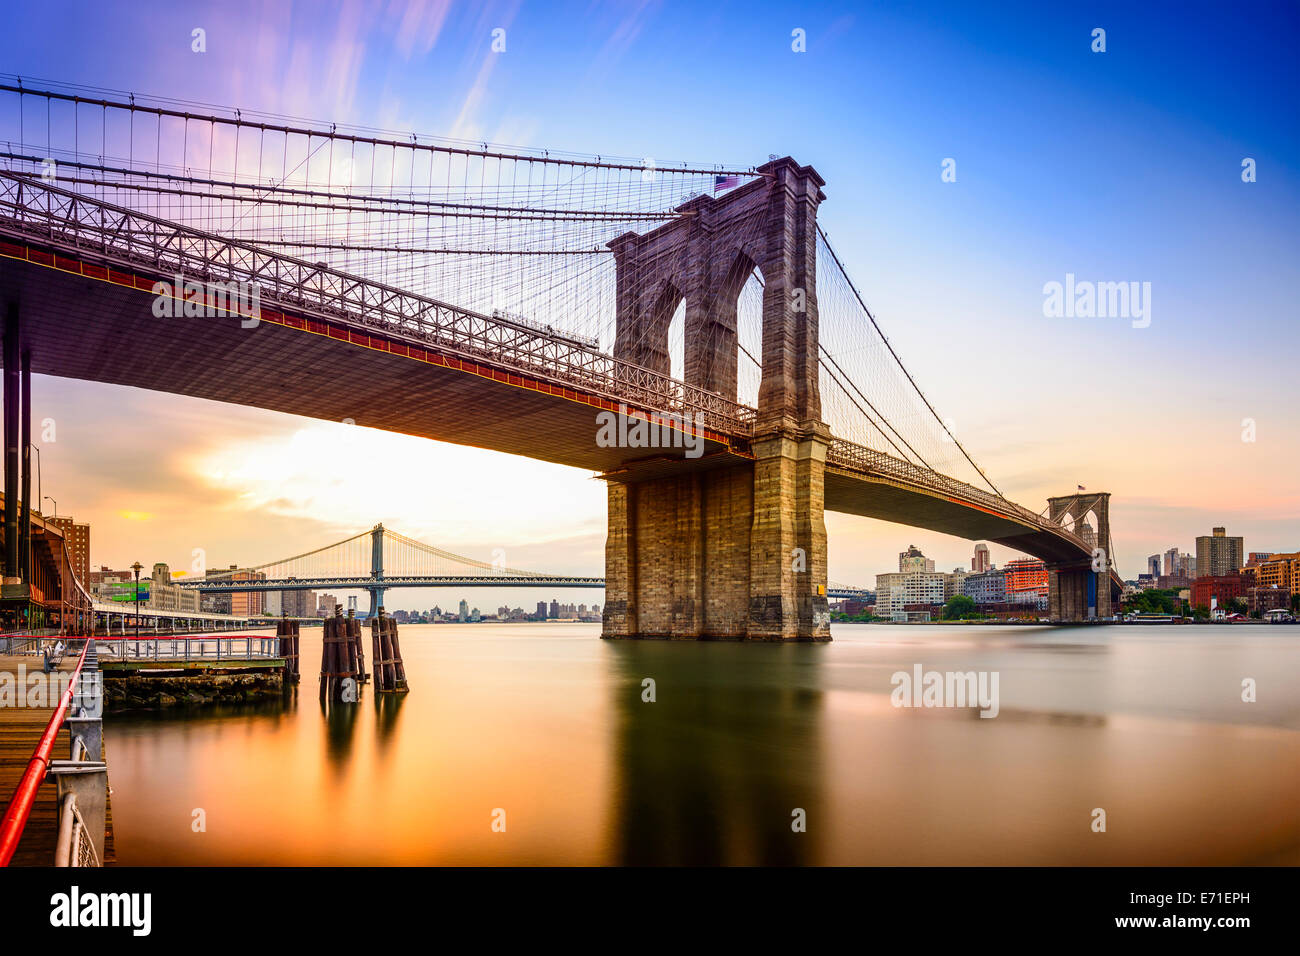 New York City, USA at the Brooklyn Bridge and East River at dawn. - Stock Image